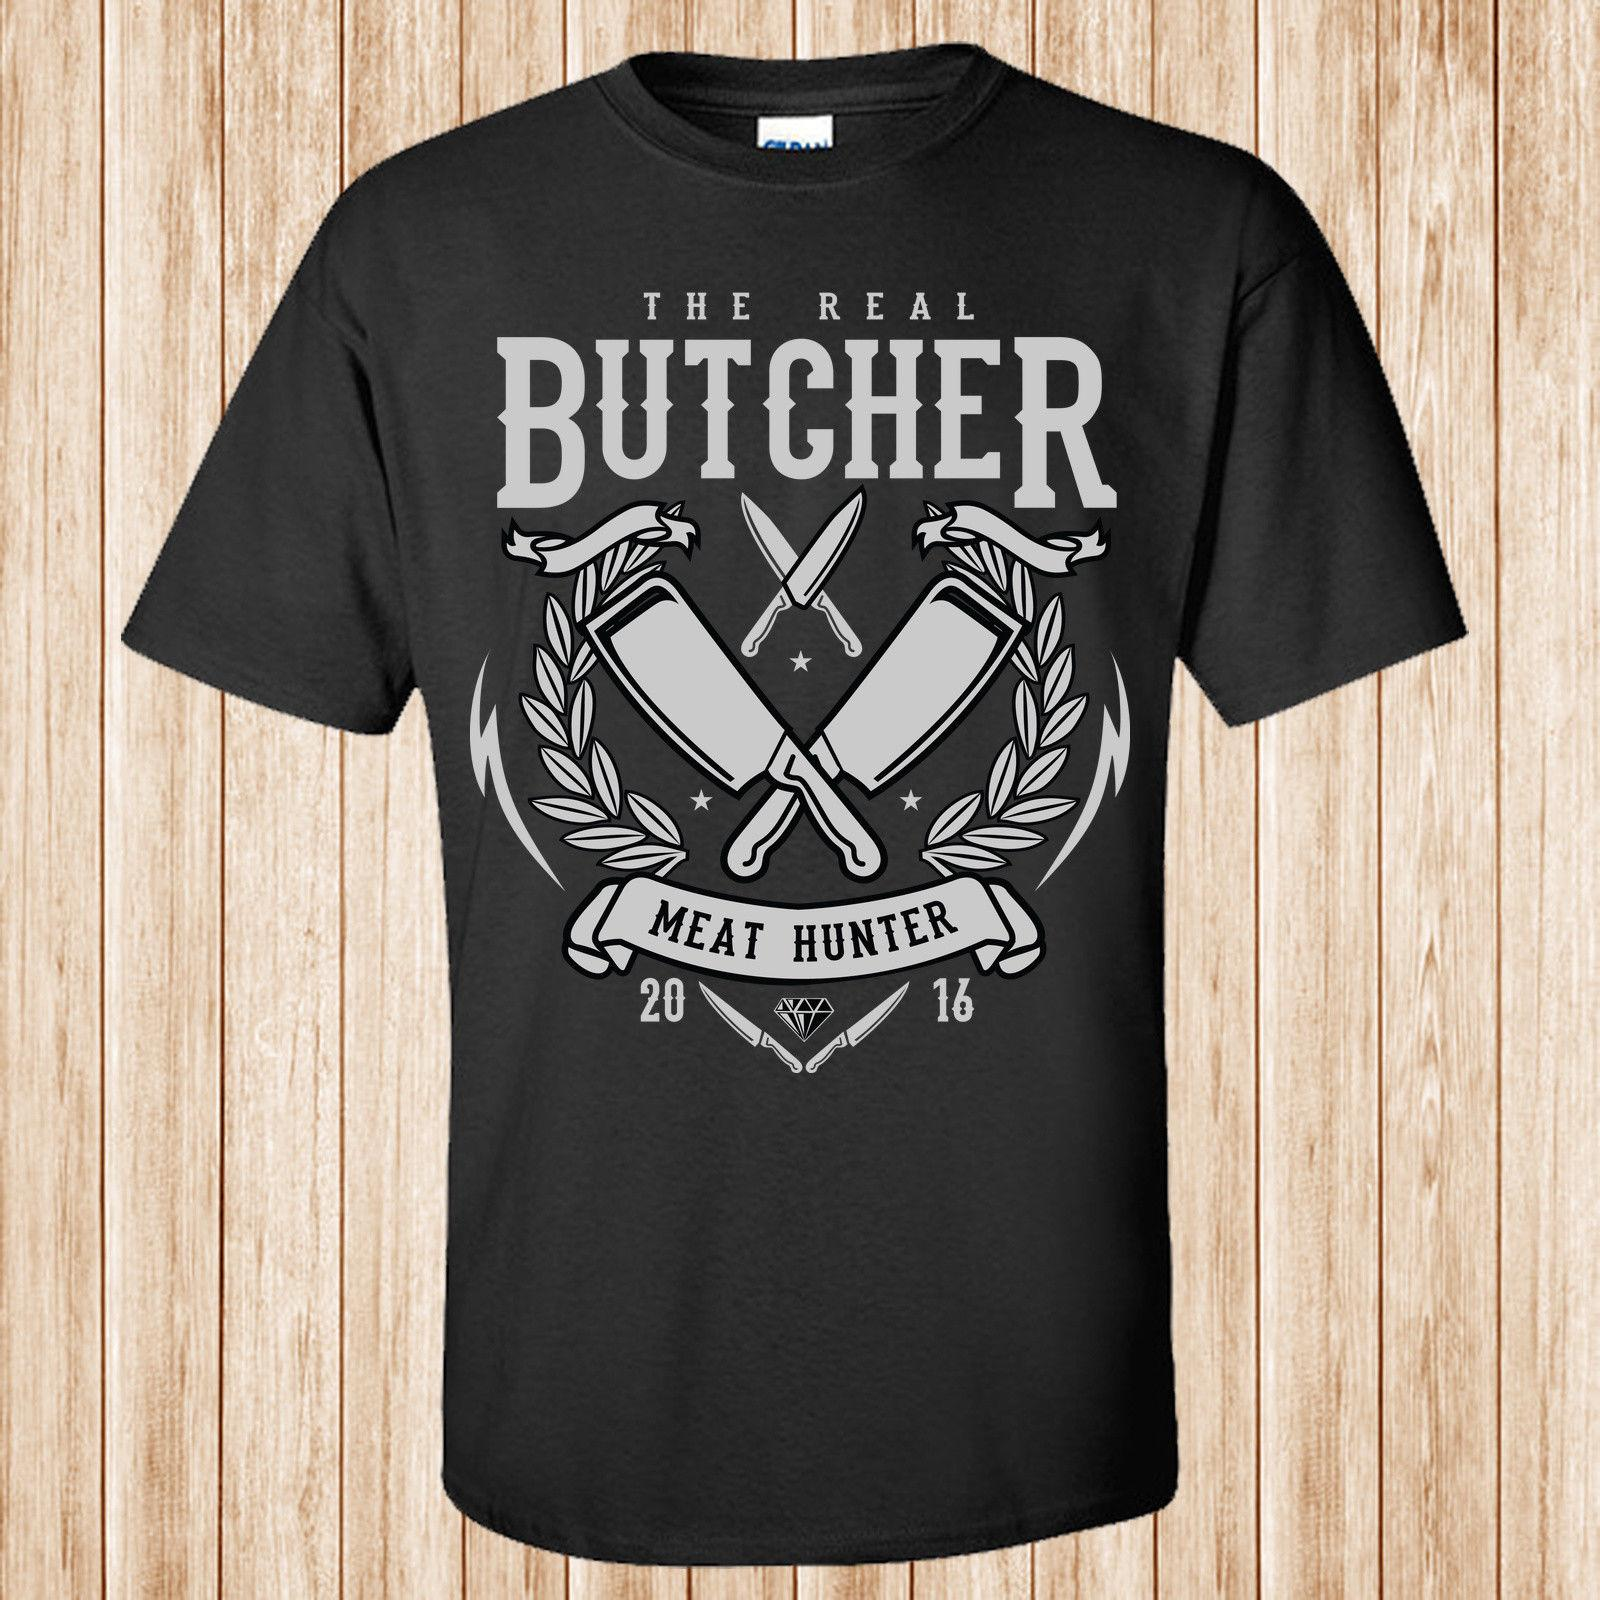 The Real Butcher camiseta 100% algodón Cool Tops Camiseta de manga corta divertida para hombre New 2018 Hot Summer Casual camiseta de impresión